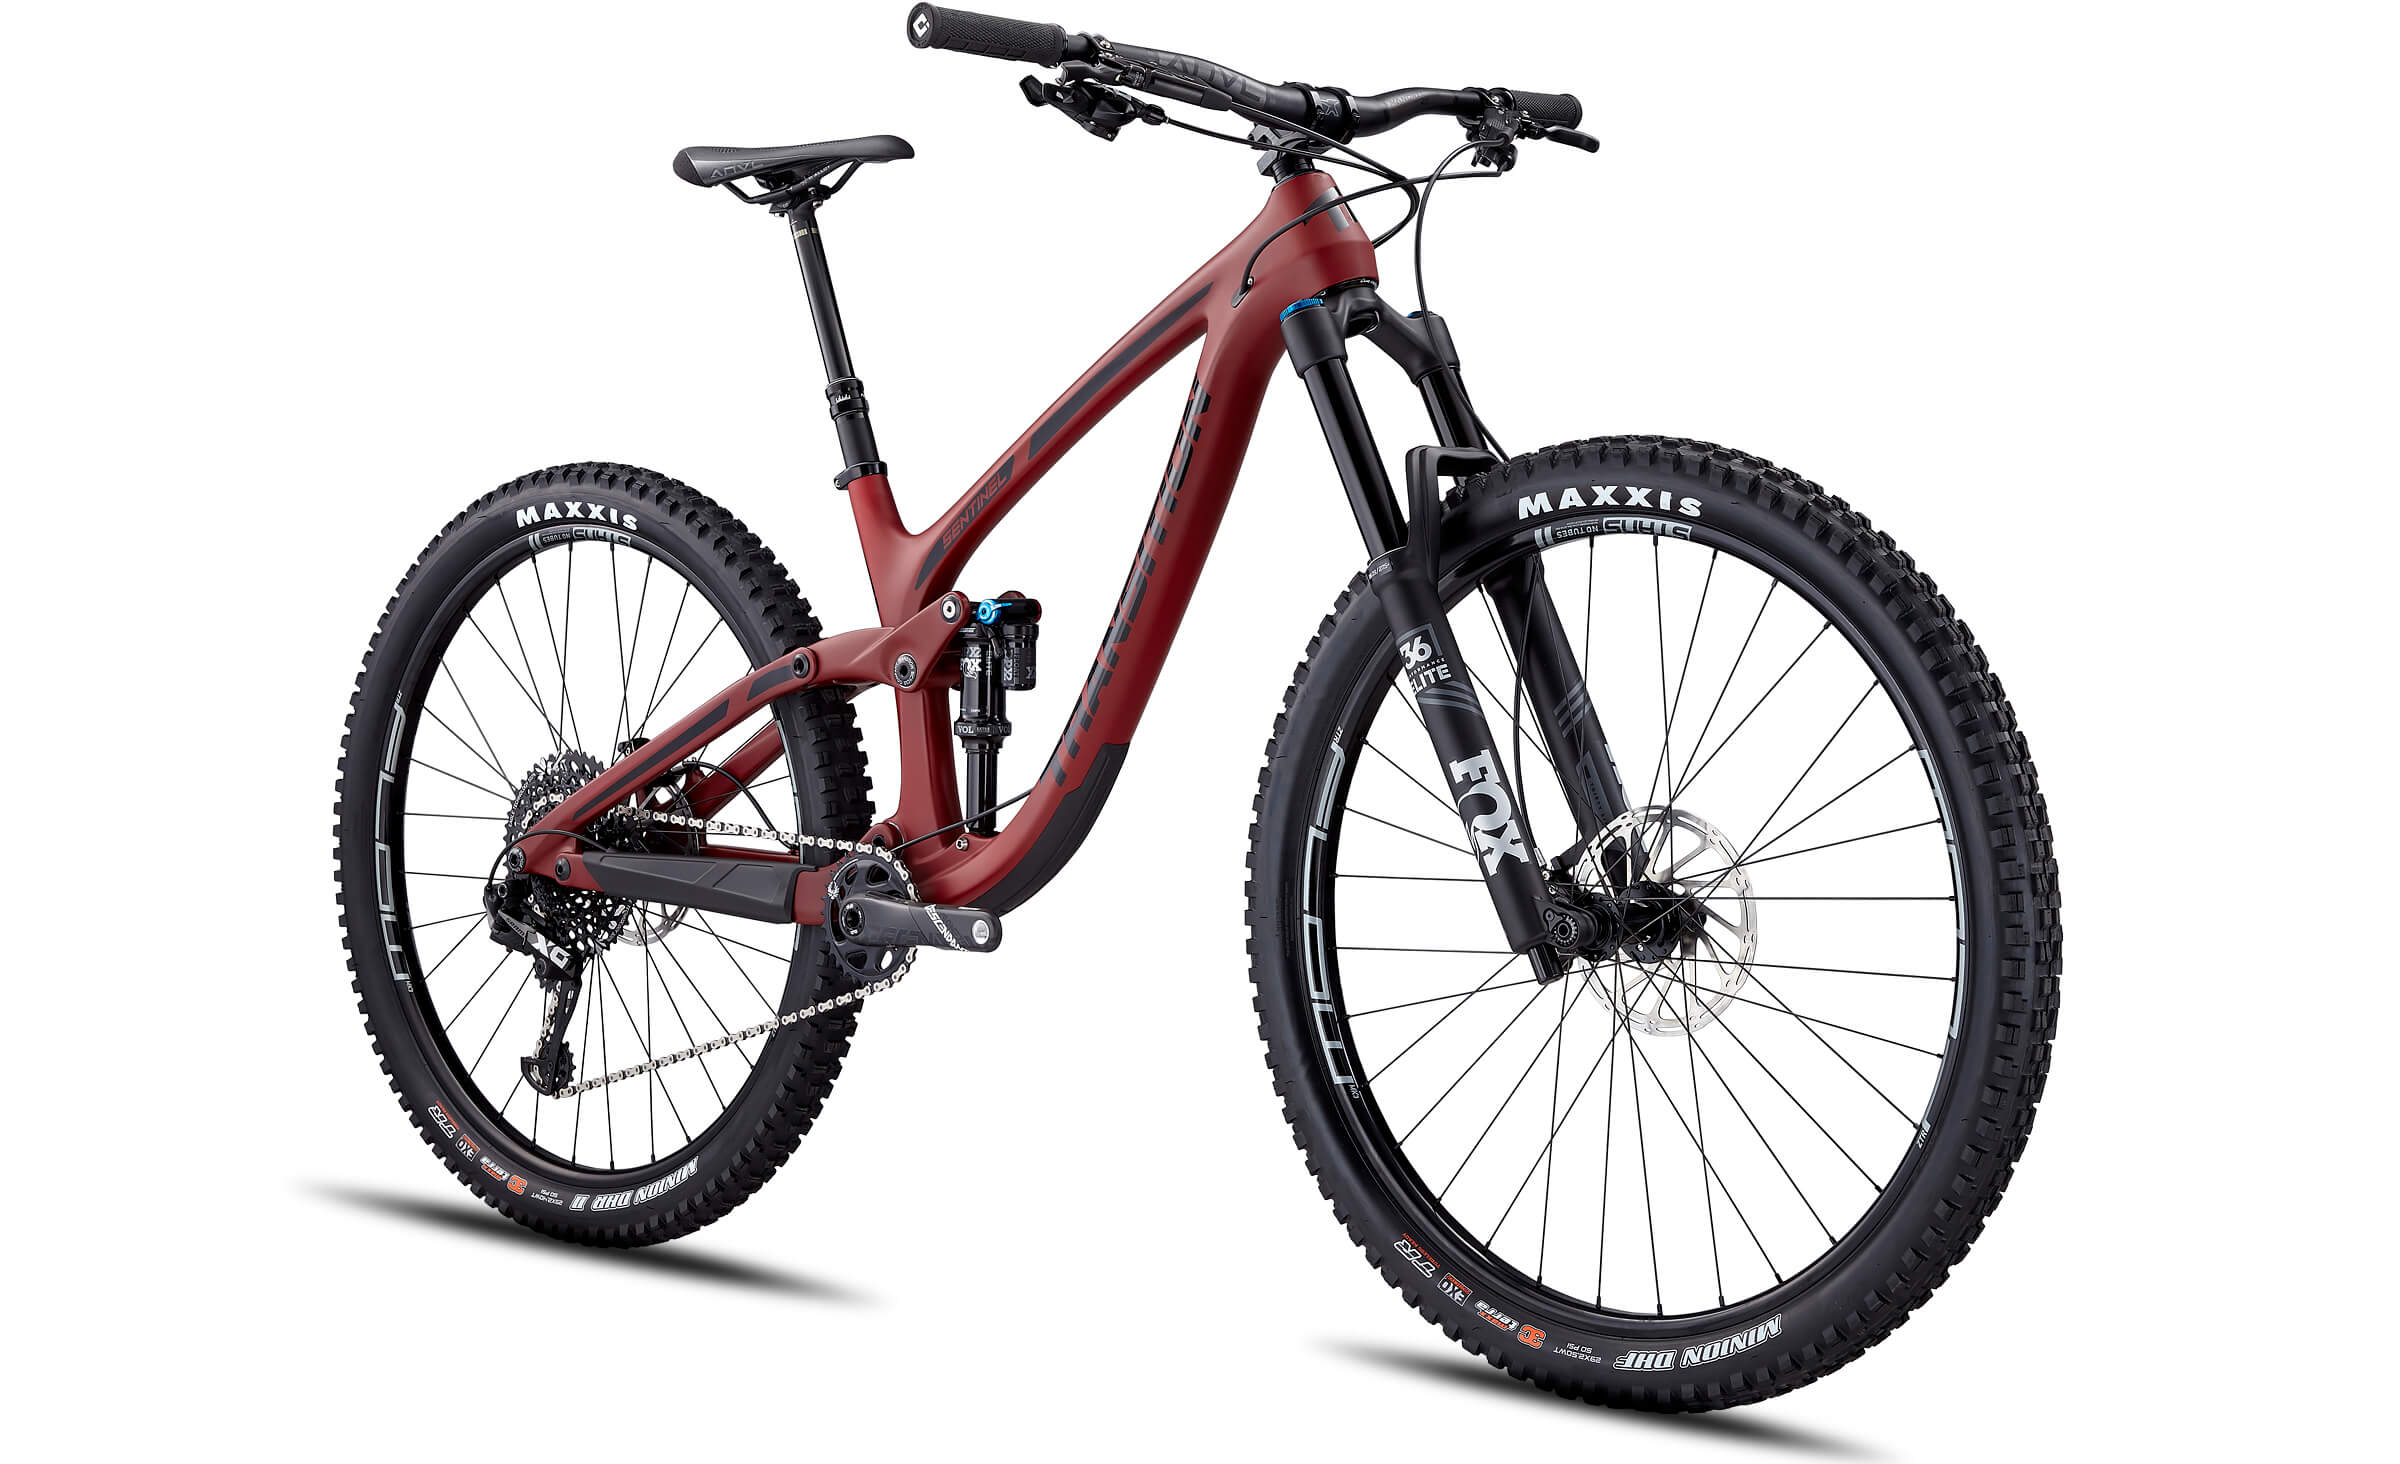 2020 Transition Sentinel Carbon X01 Full Sus Mountain Bike in Red | MTB